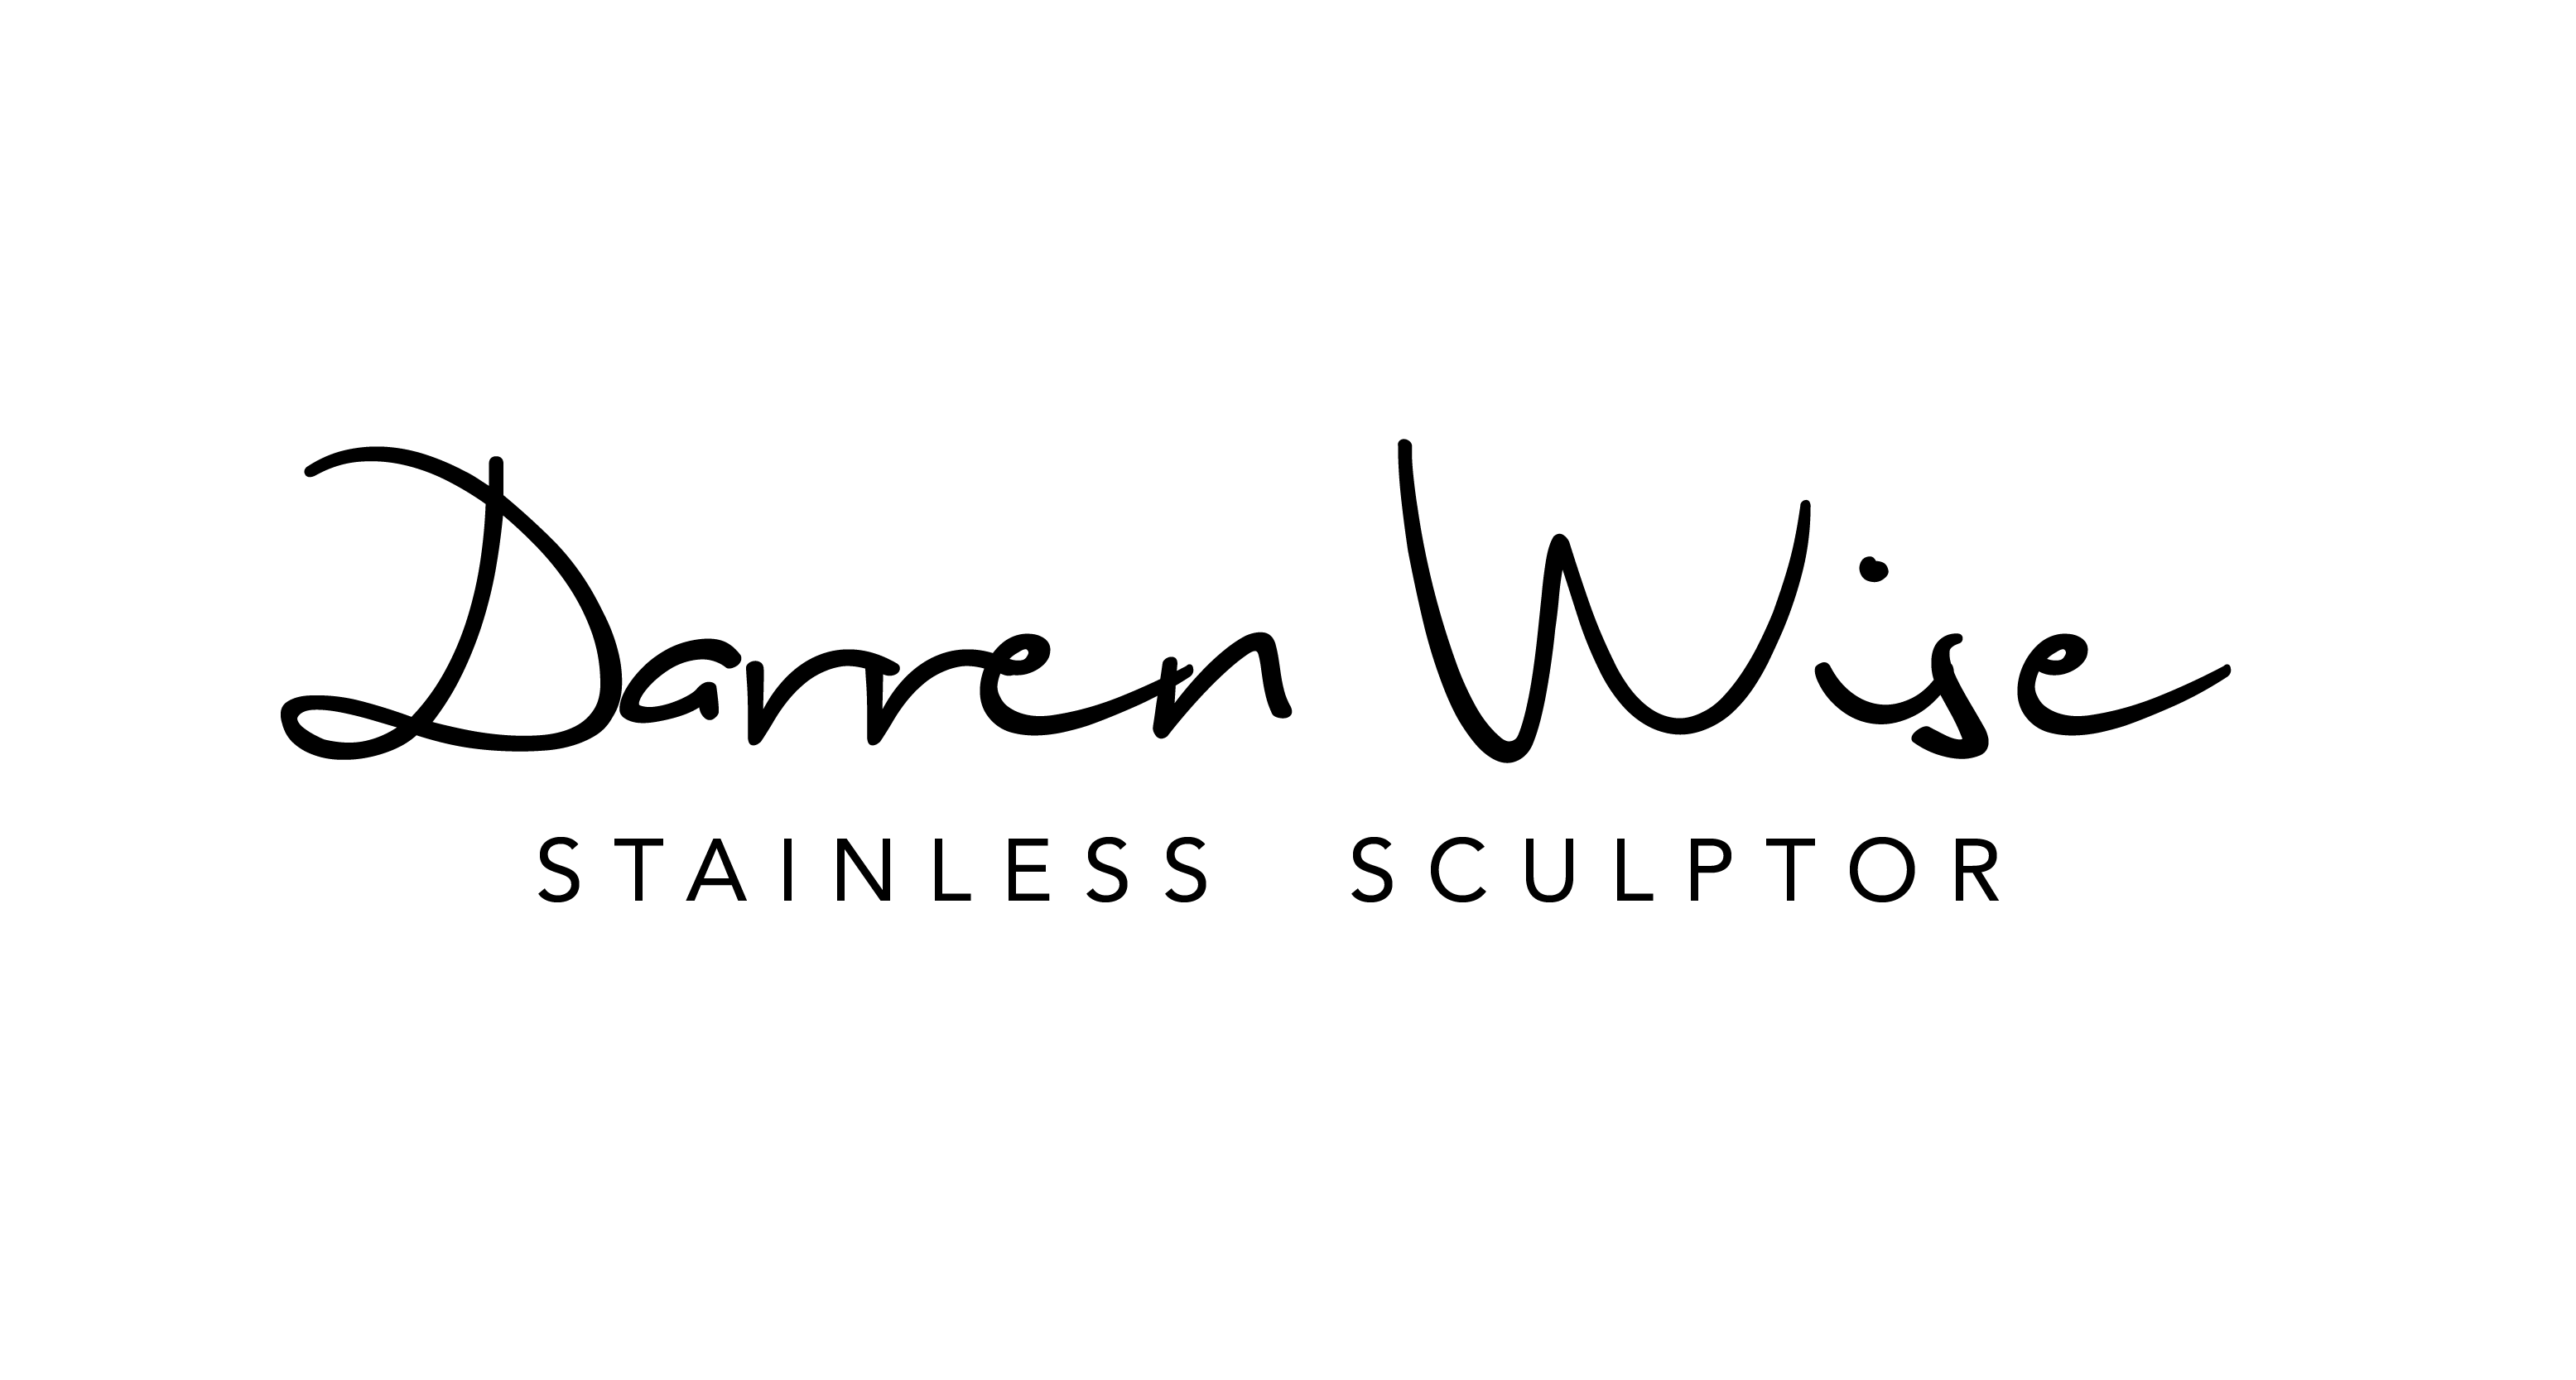 Darren Wise Stainless Sculptor | www.darrenwise.co.nz Logo